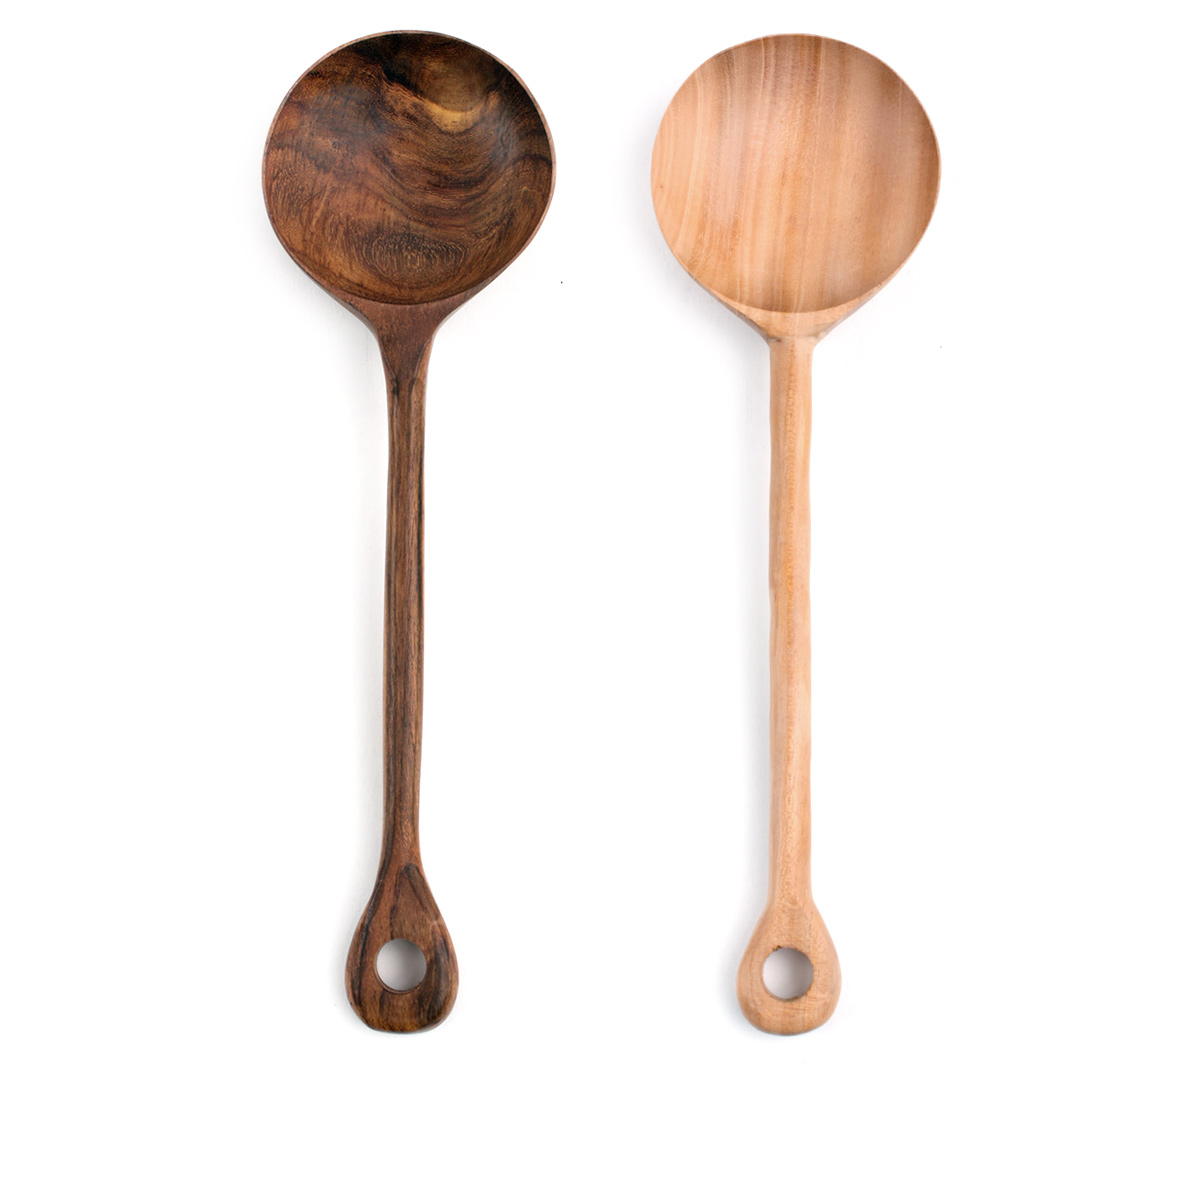 woodenspoon_smladel_hero1.jpg